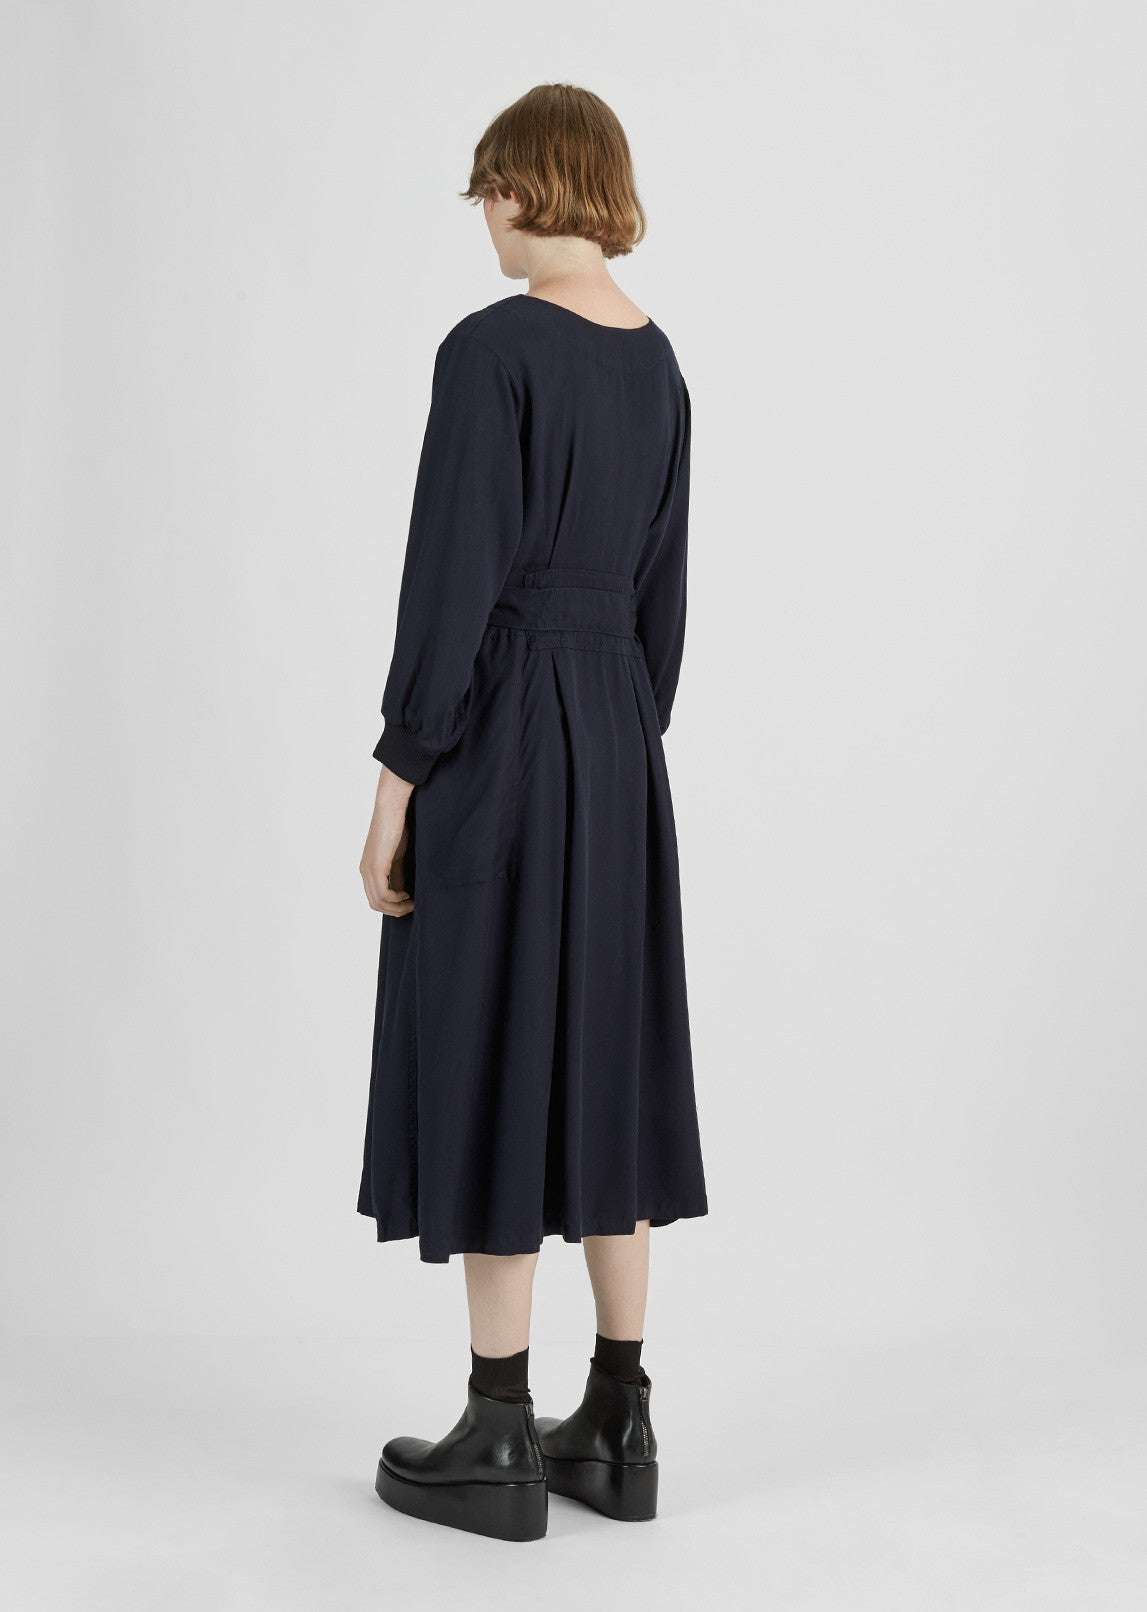 Tencel Uniform Dress